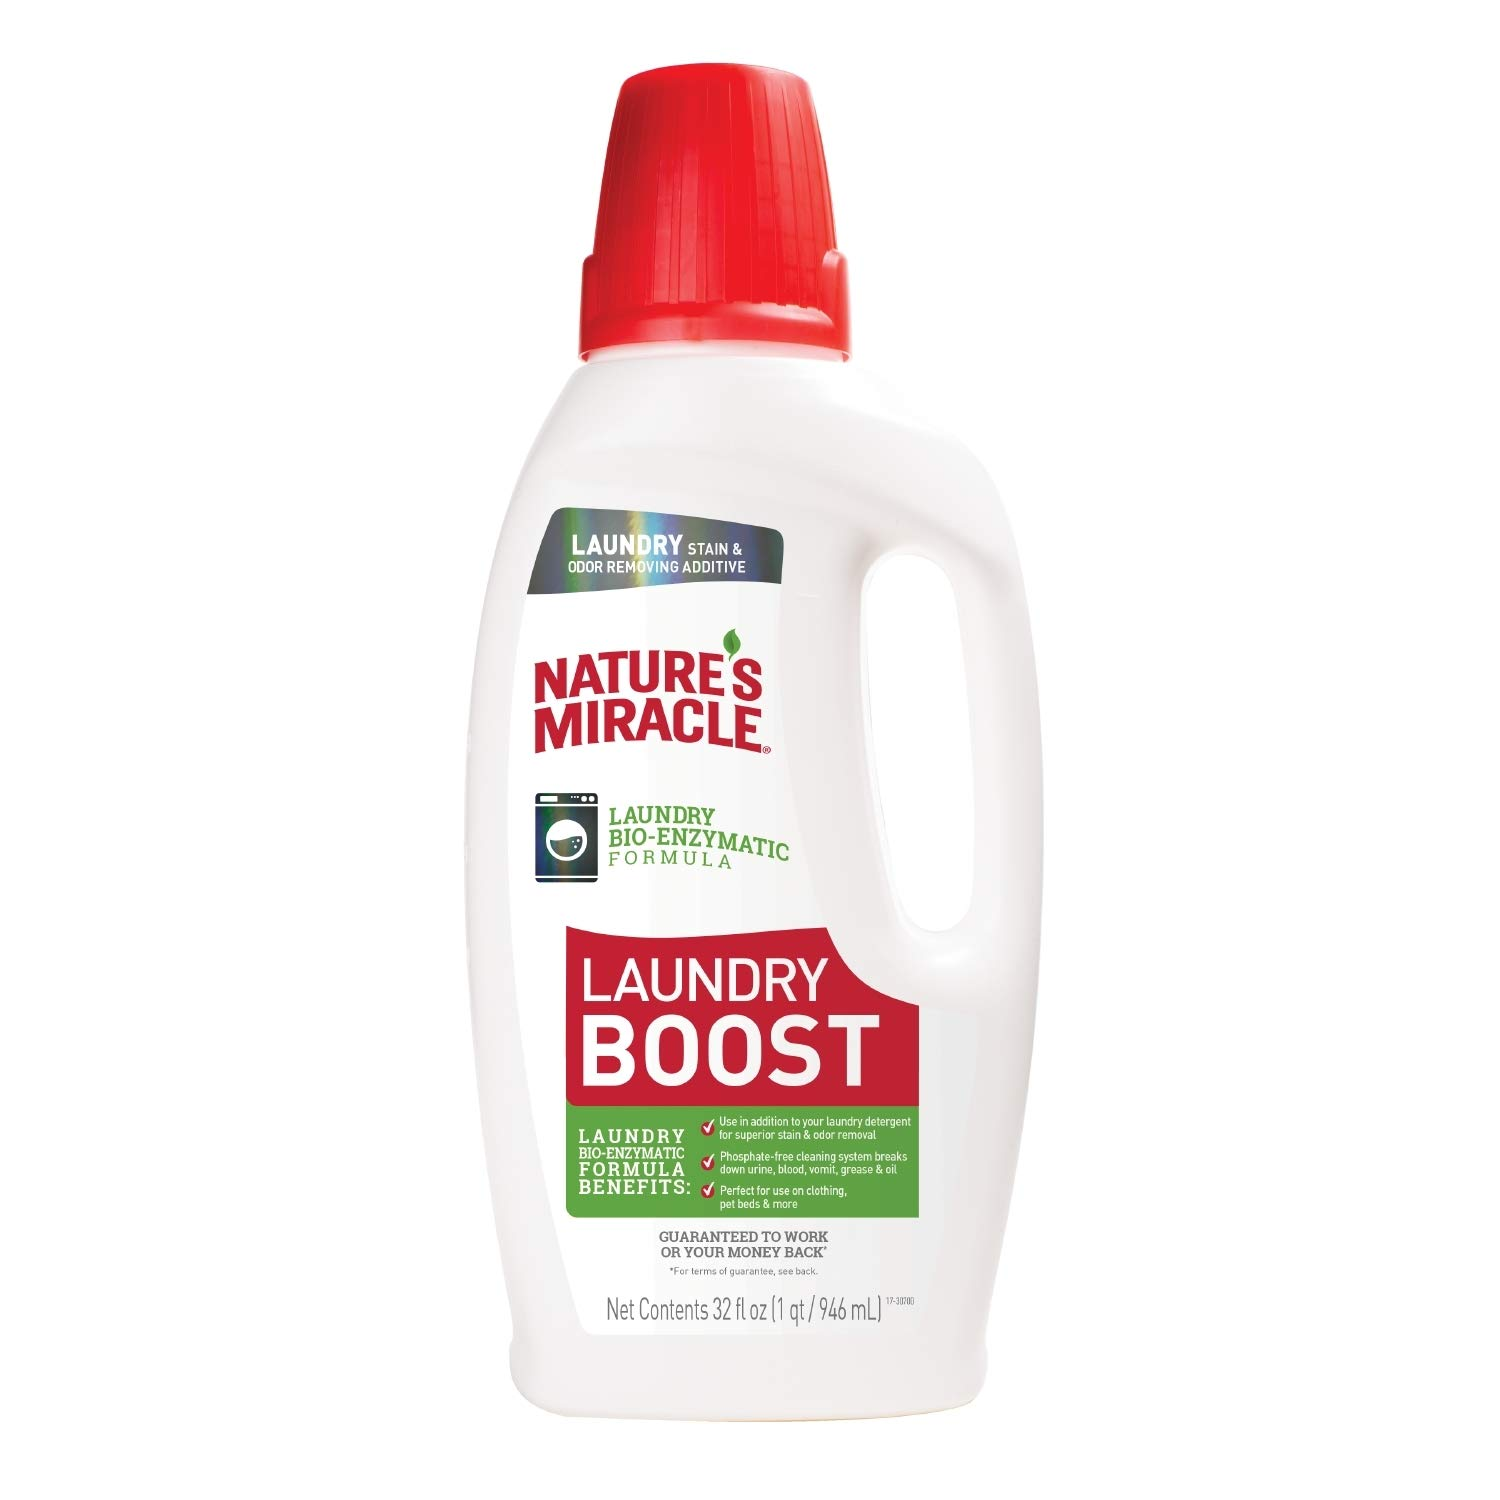 Nature's Miracle Laundry Boost 32 fl oz, Laundry Bio-Enzymatic Formula, Breaks Down Urine, Blood, Vomit, Grease And Oil